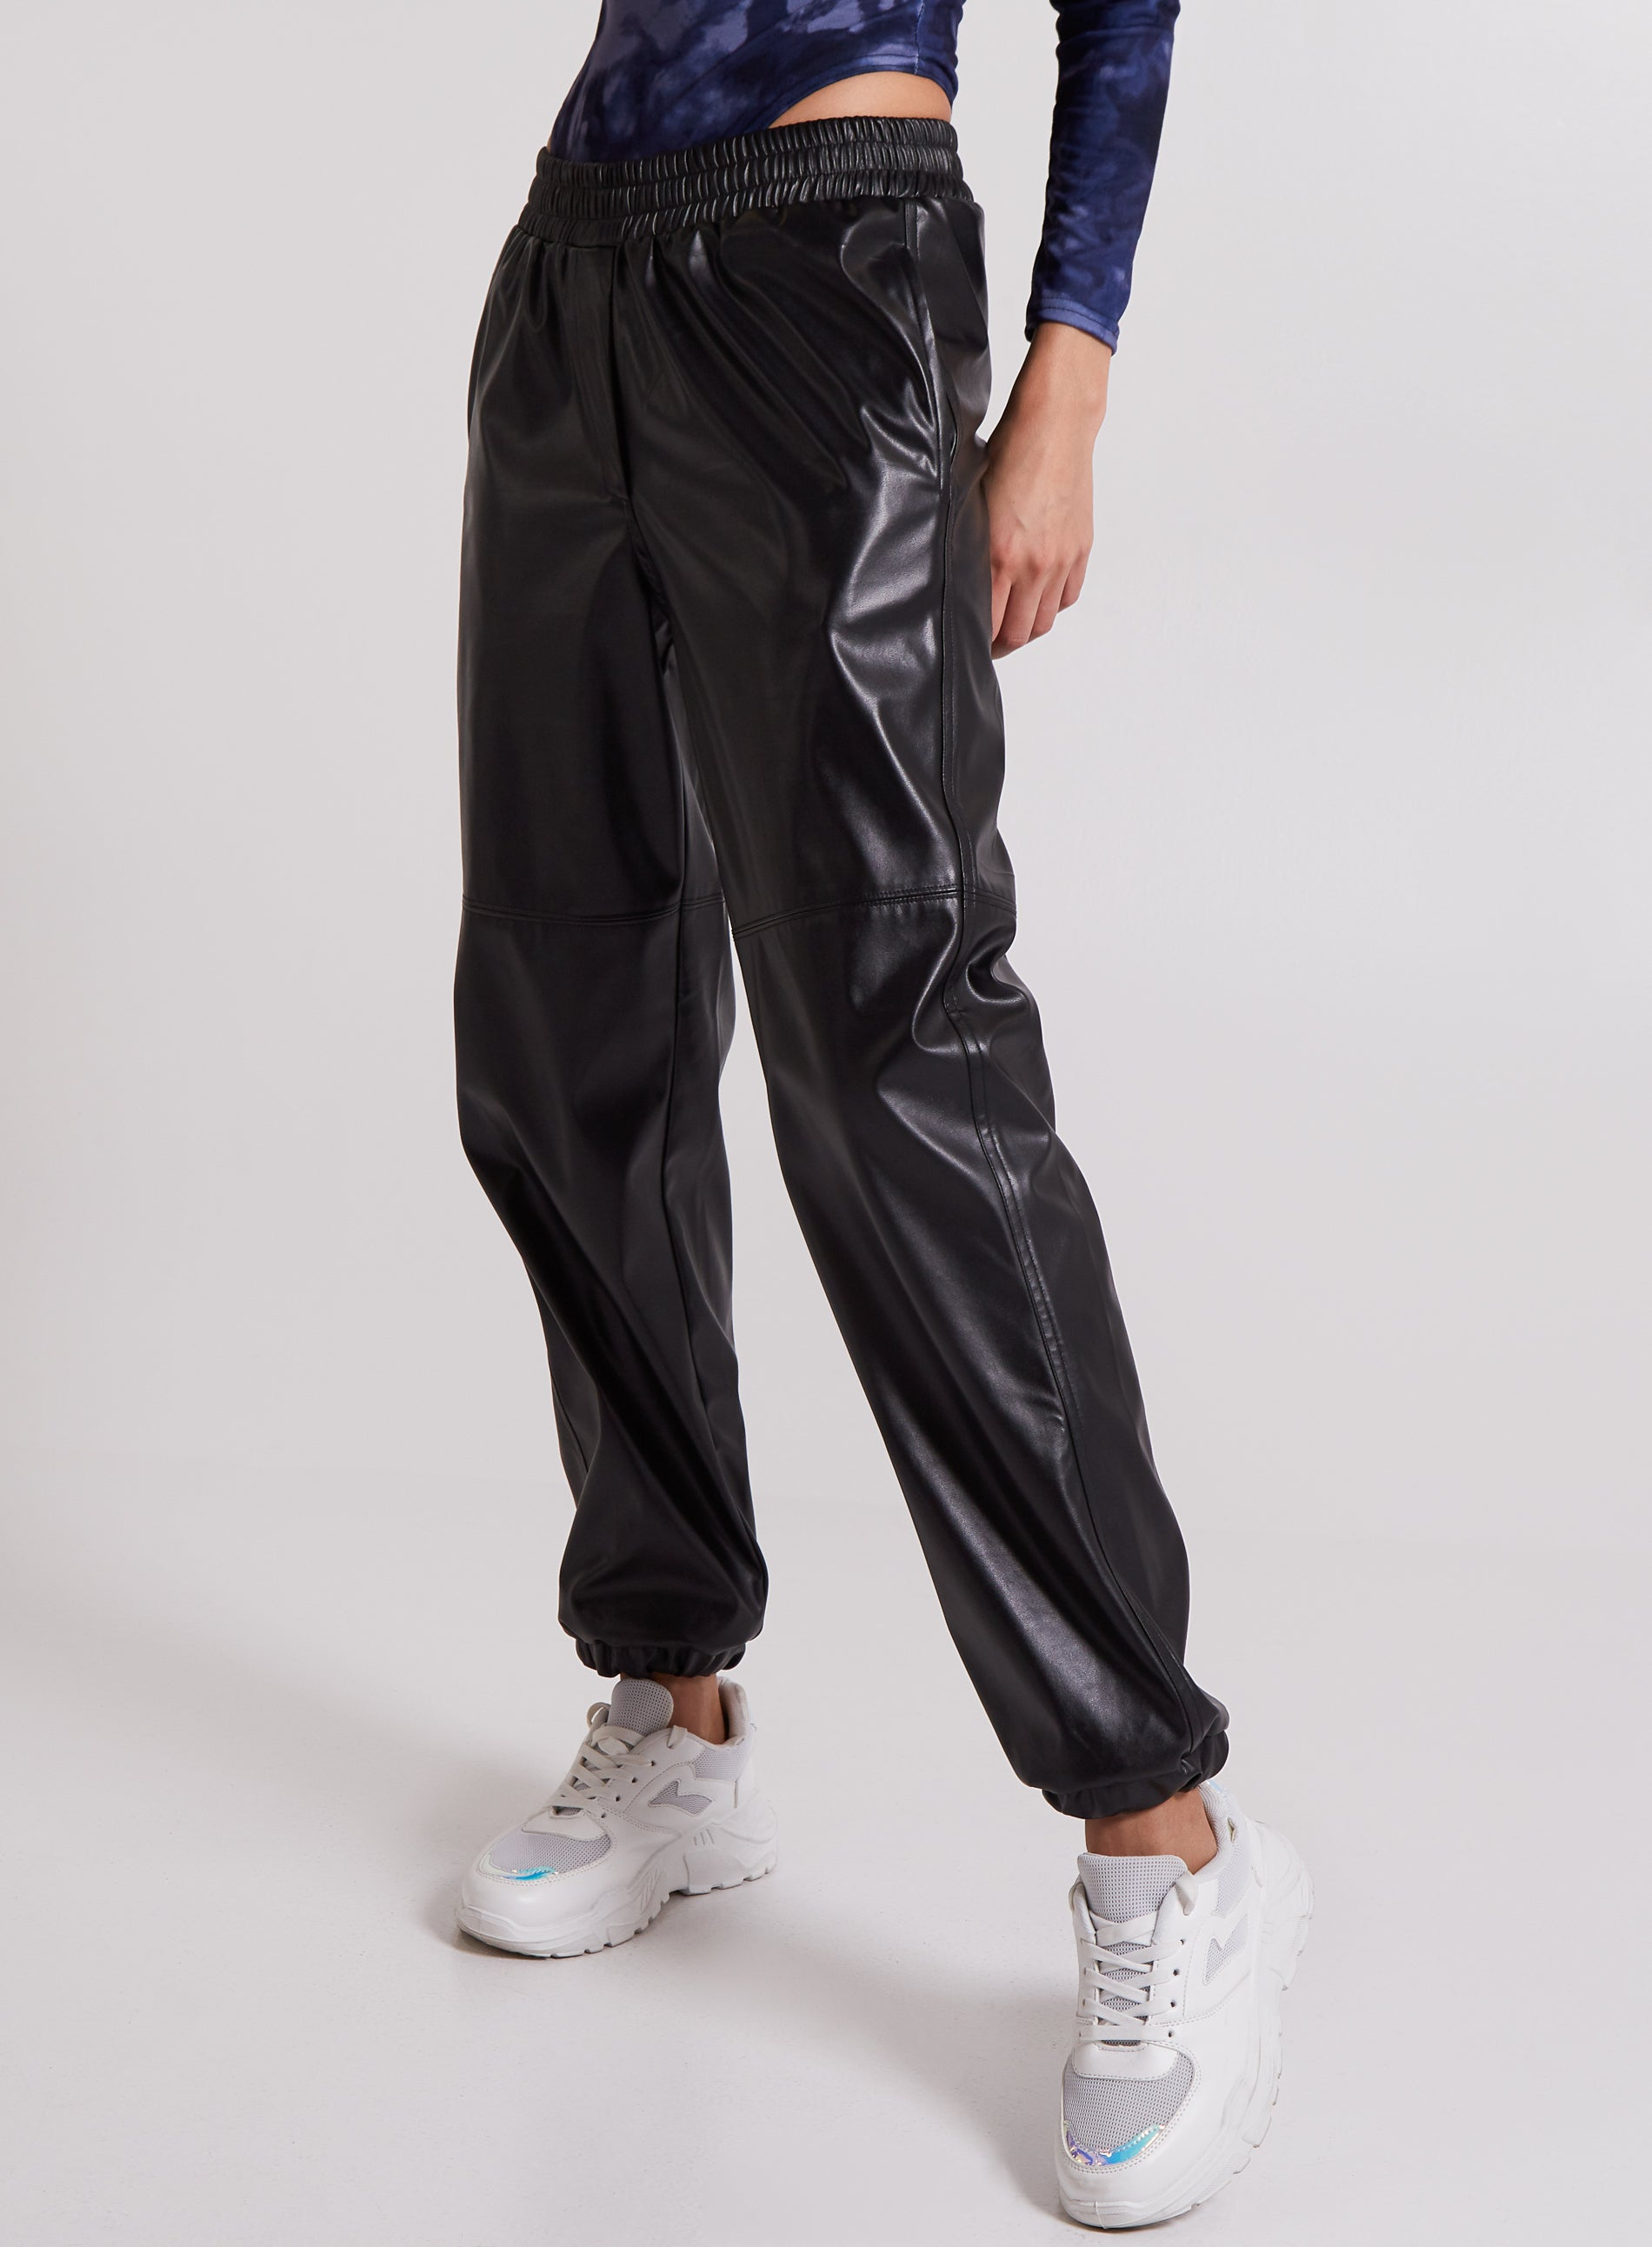 WICKED - Elasticated Waist Vegan Leather Joggers